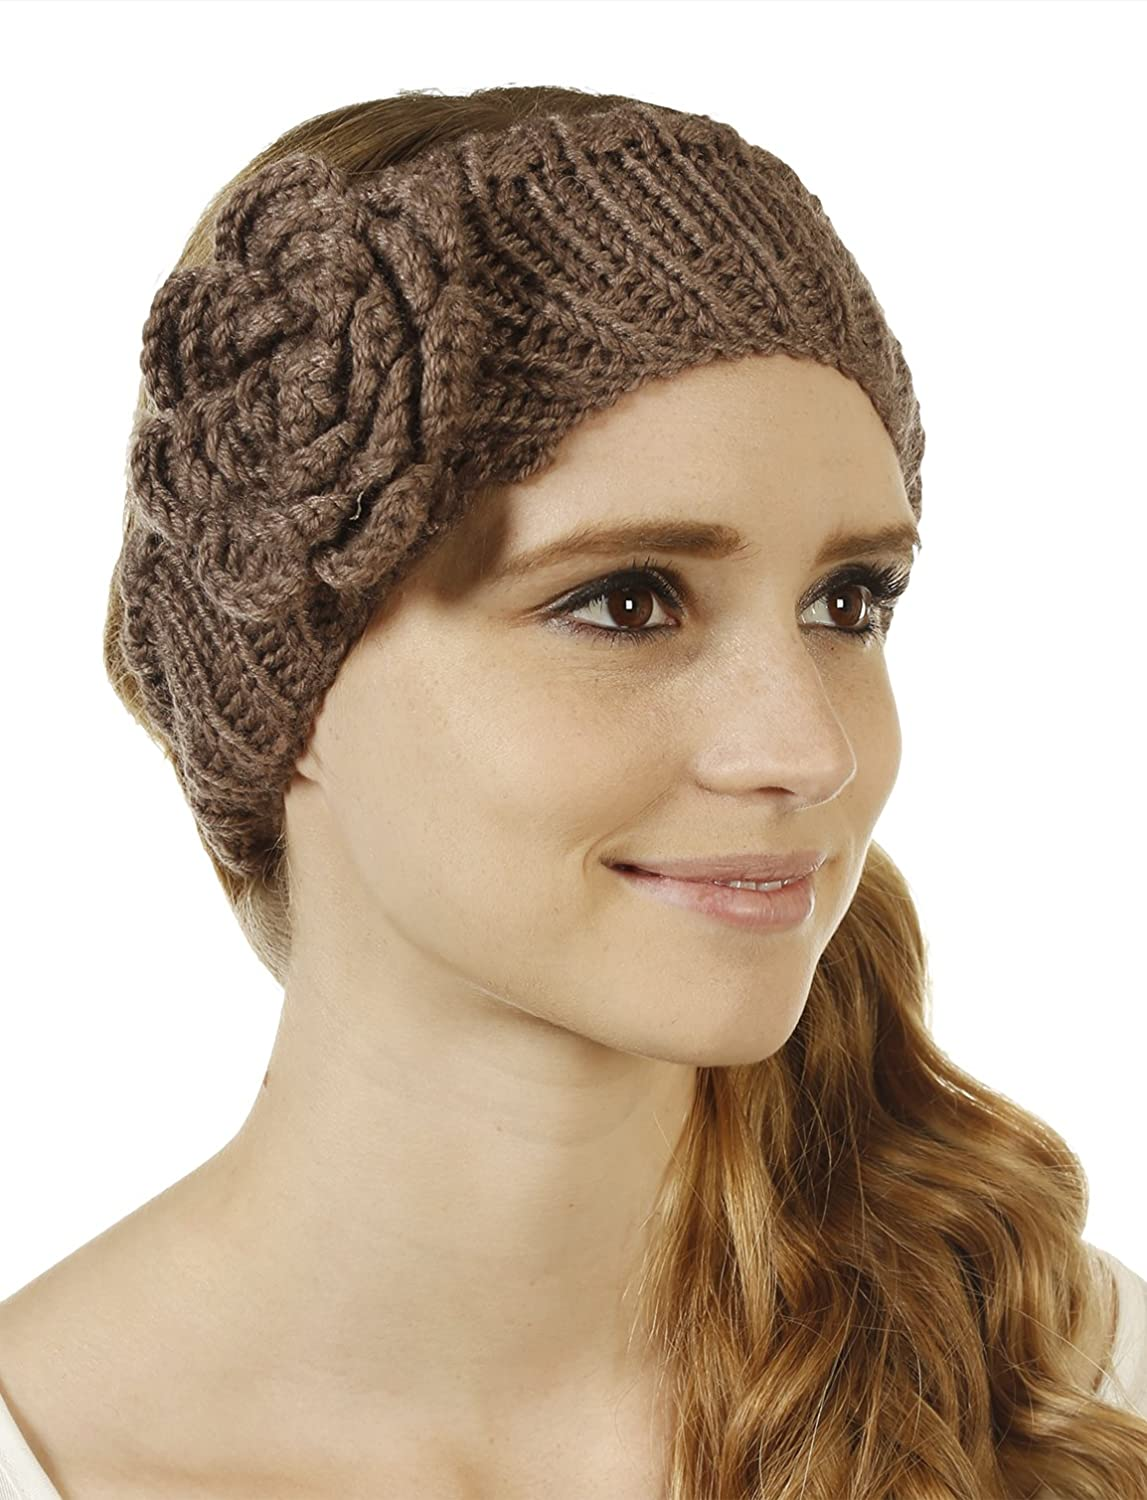 FHn Love Women's Cold Weather Headband with Rose Embellishment Mocha